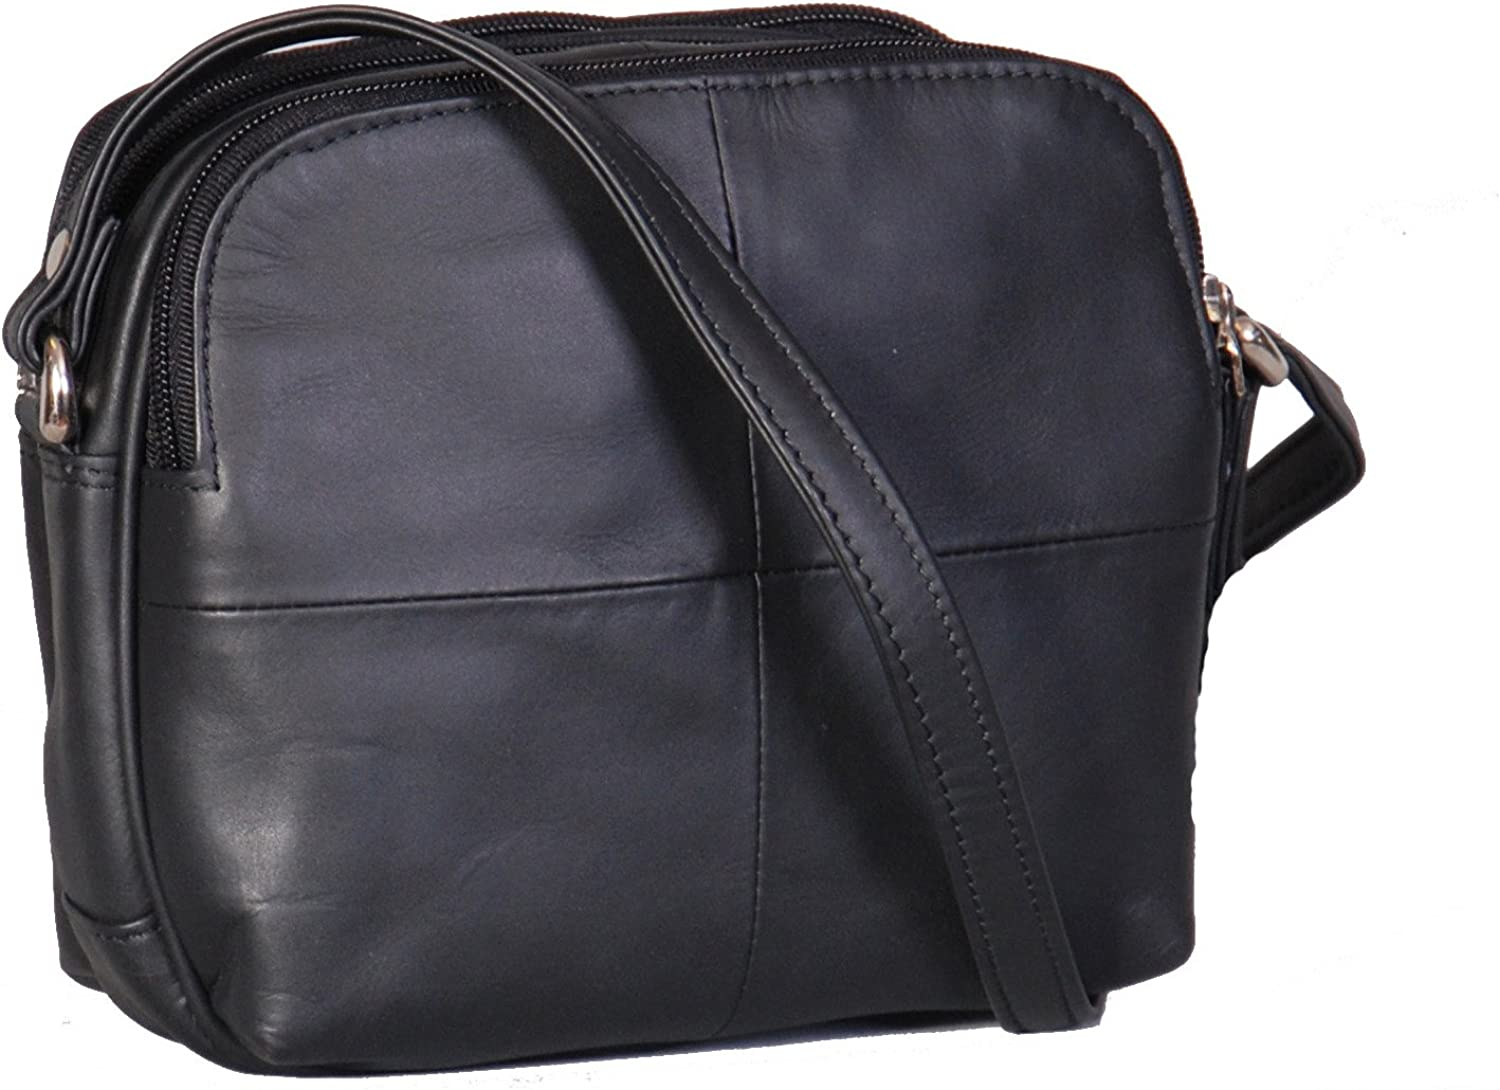 Womens Real Leather Small Organiser Travel Pouch Sling Shoulder Bag Bari Black